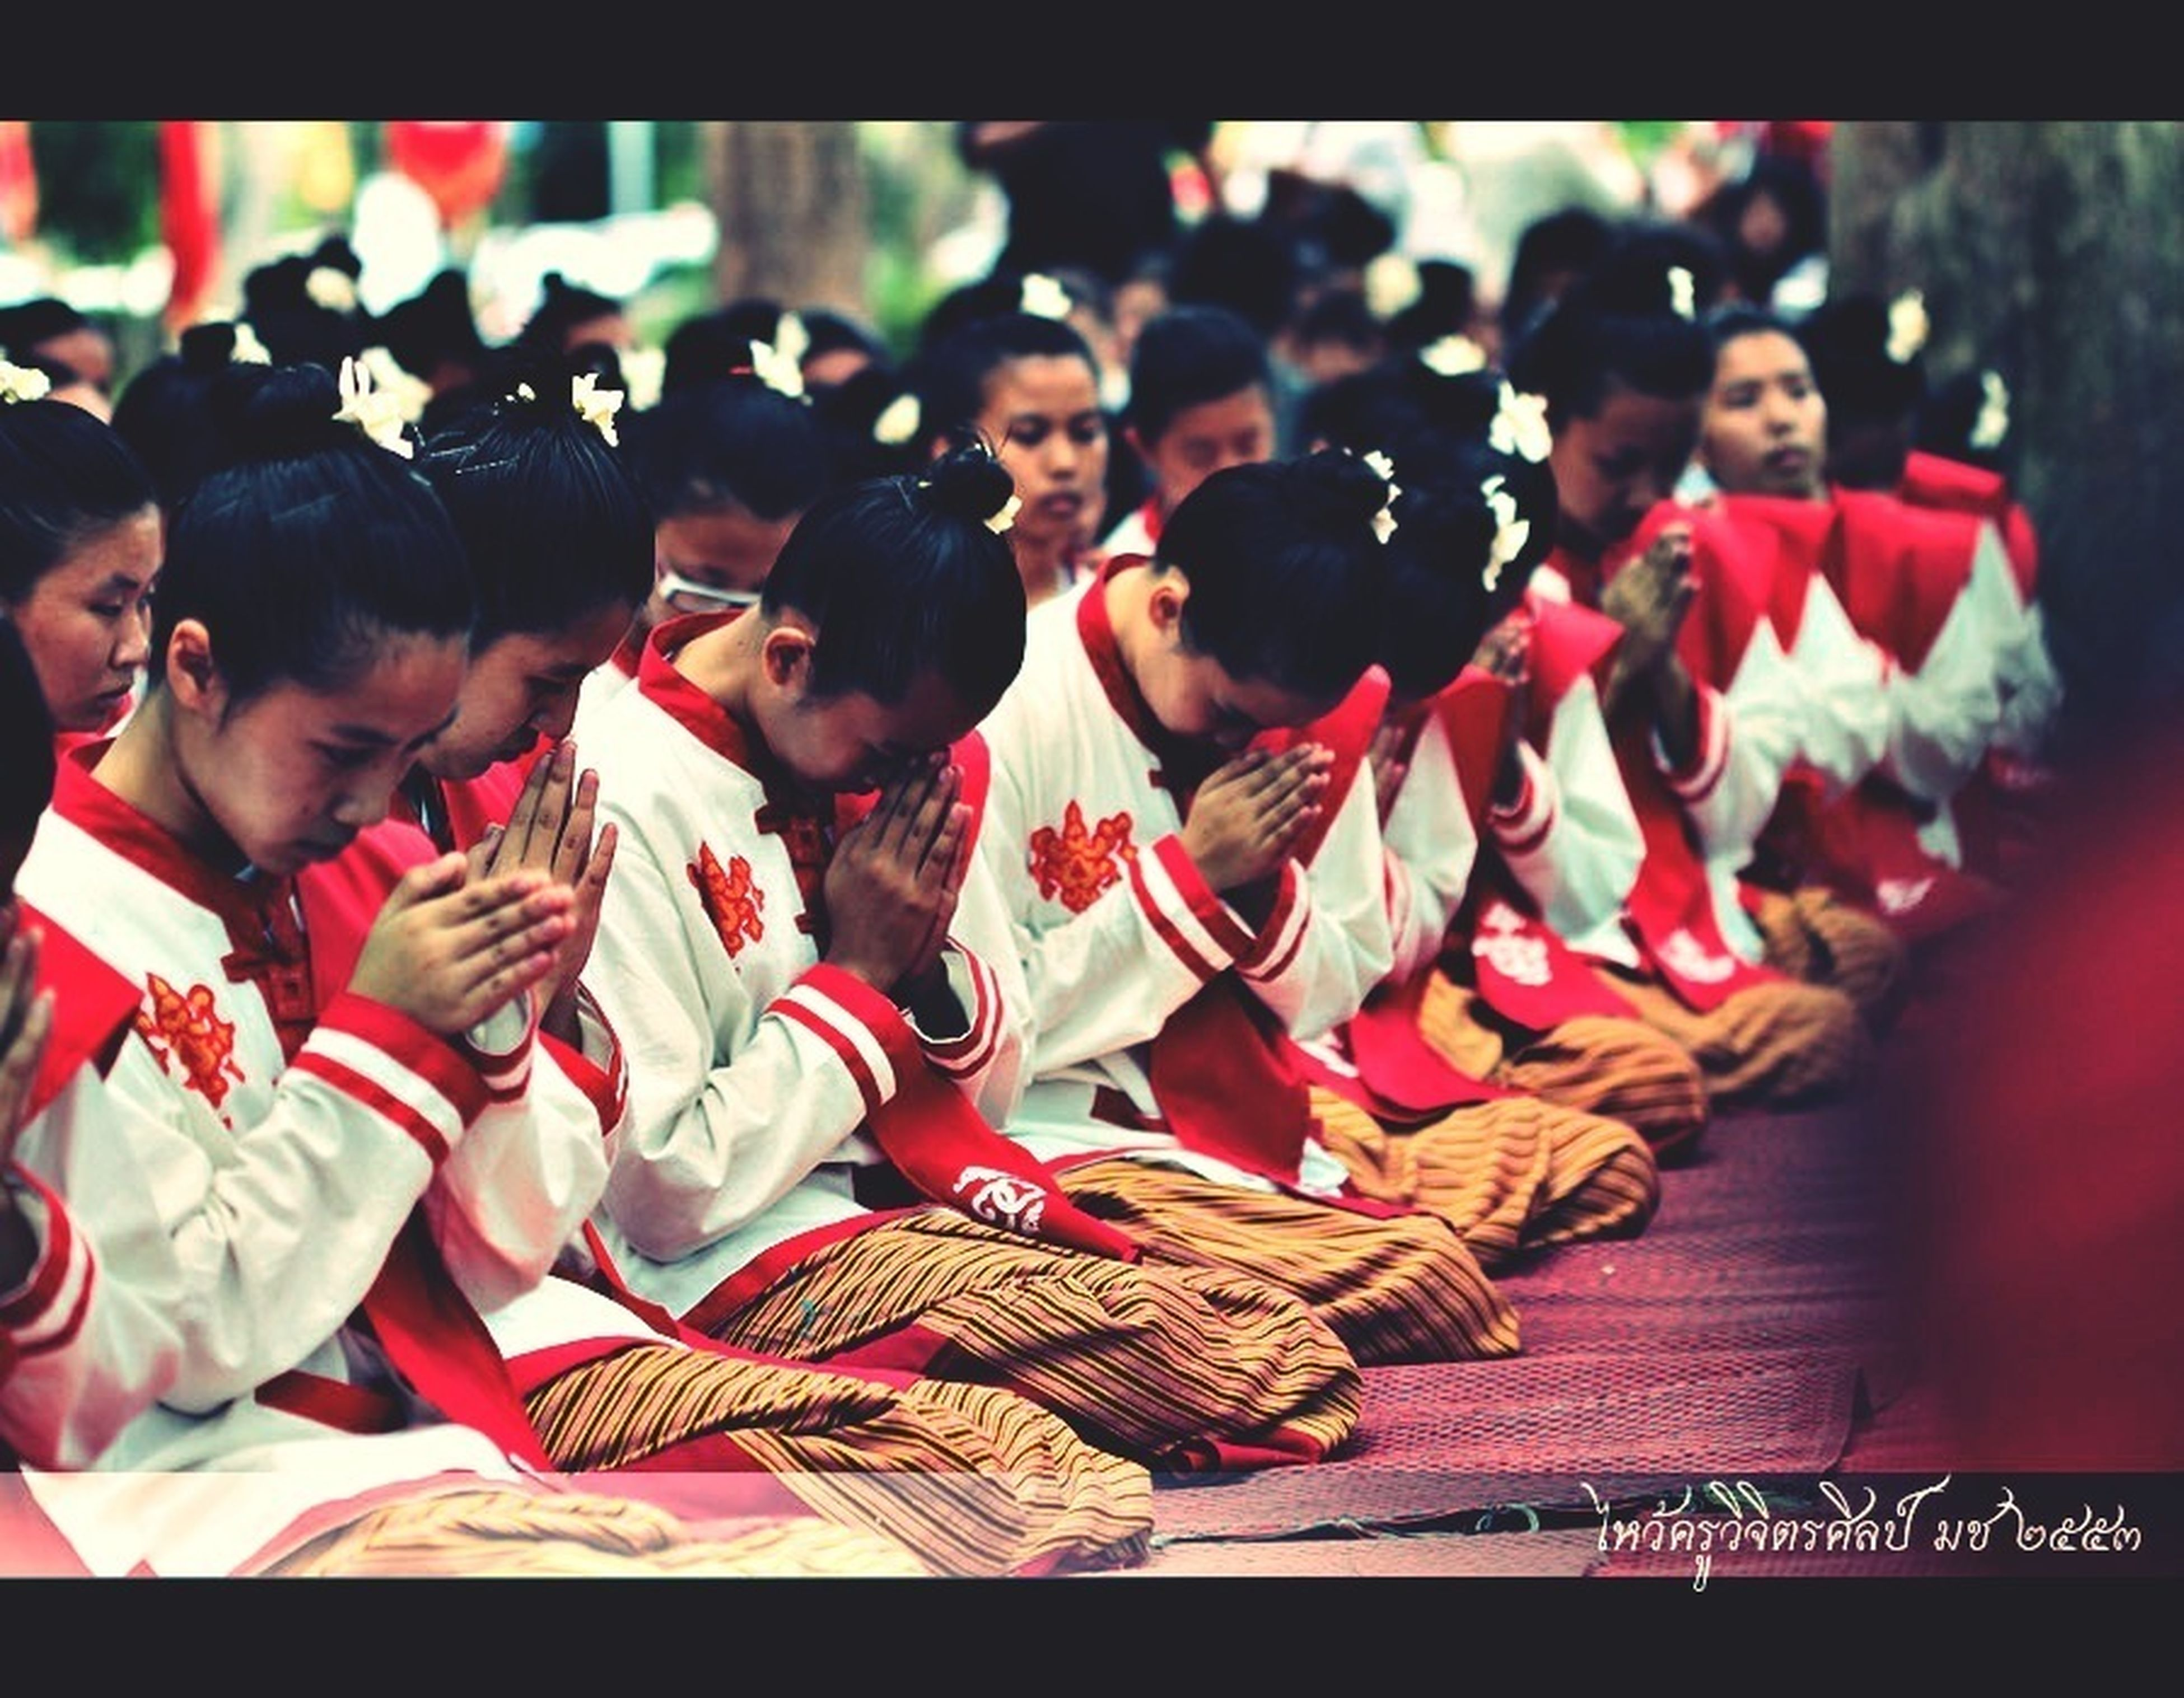 indoors, lifestyles, transfer print, leisure activity, togetherness, person, large group of people, auto post production filter, men, casual clothing, focus on foreground, sitting, tradition, celebration, cultures, standing, love, traditional clothing